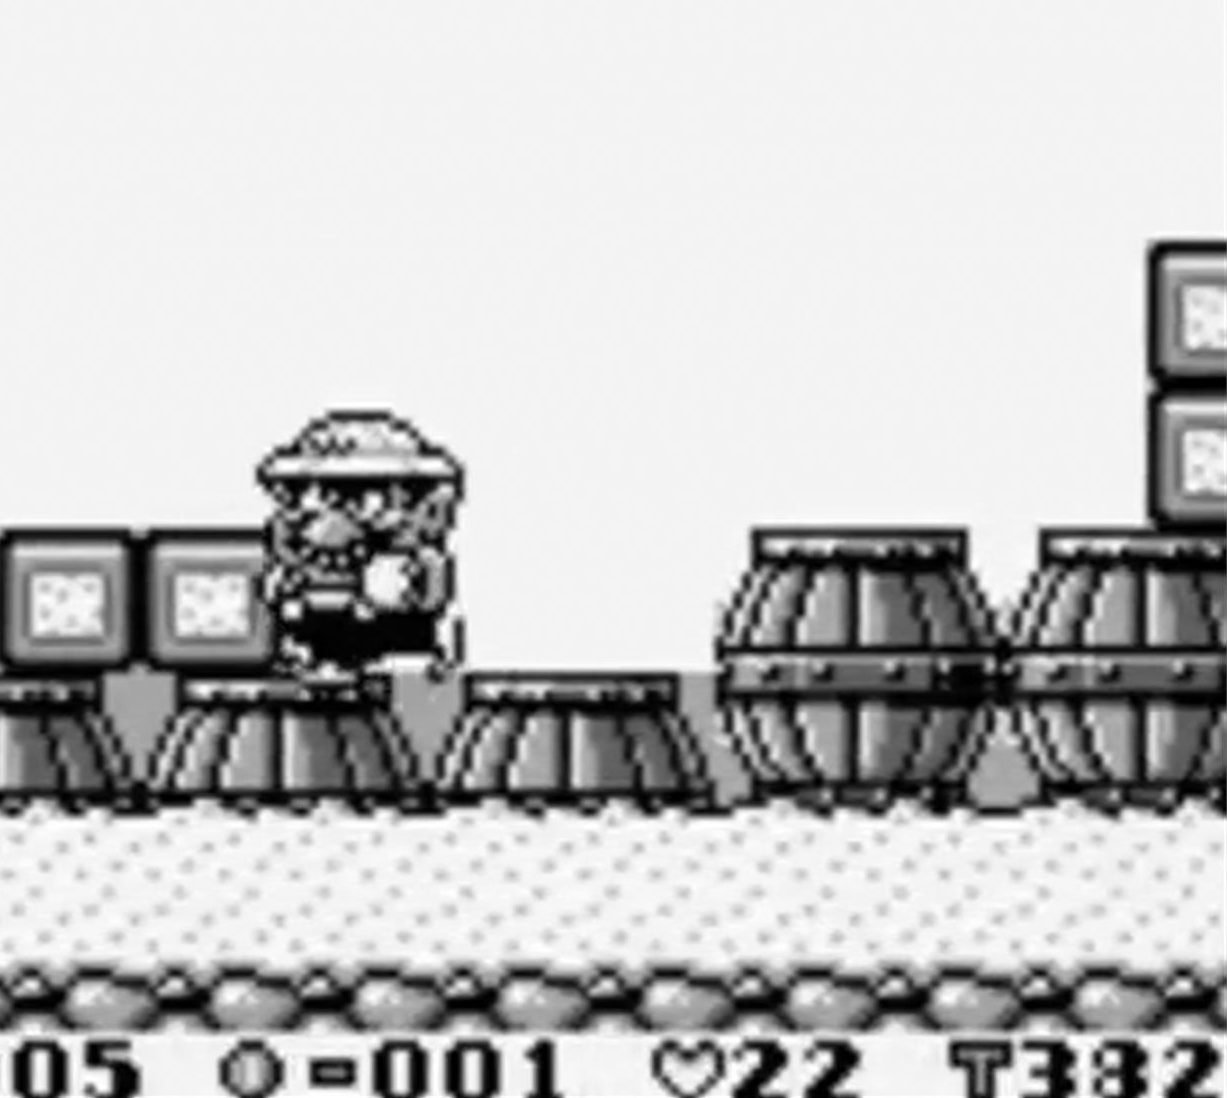 Wario Land Super Mario Land 3 1994 Nintendo e1627899647323 The Classic Game Boy Games We Loved To Play On The Move